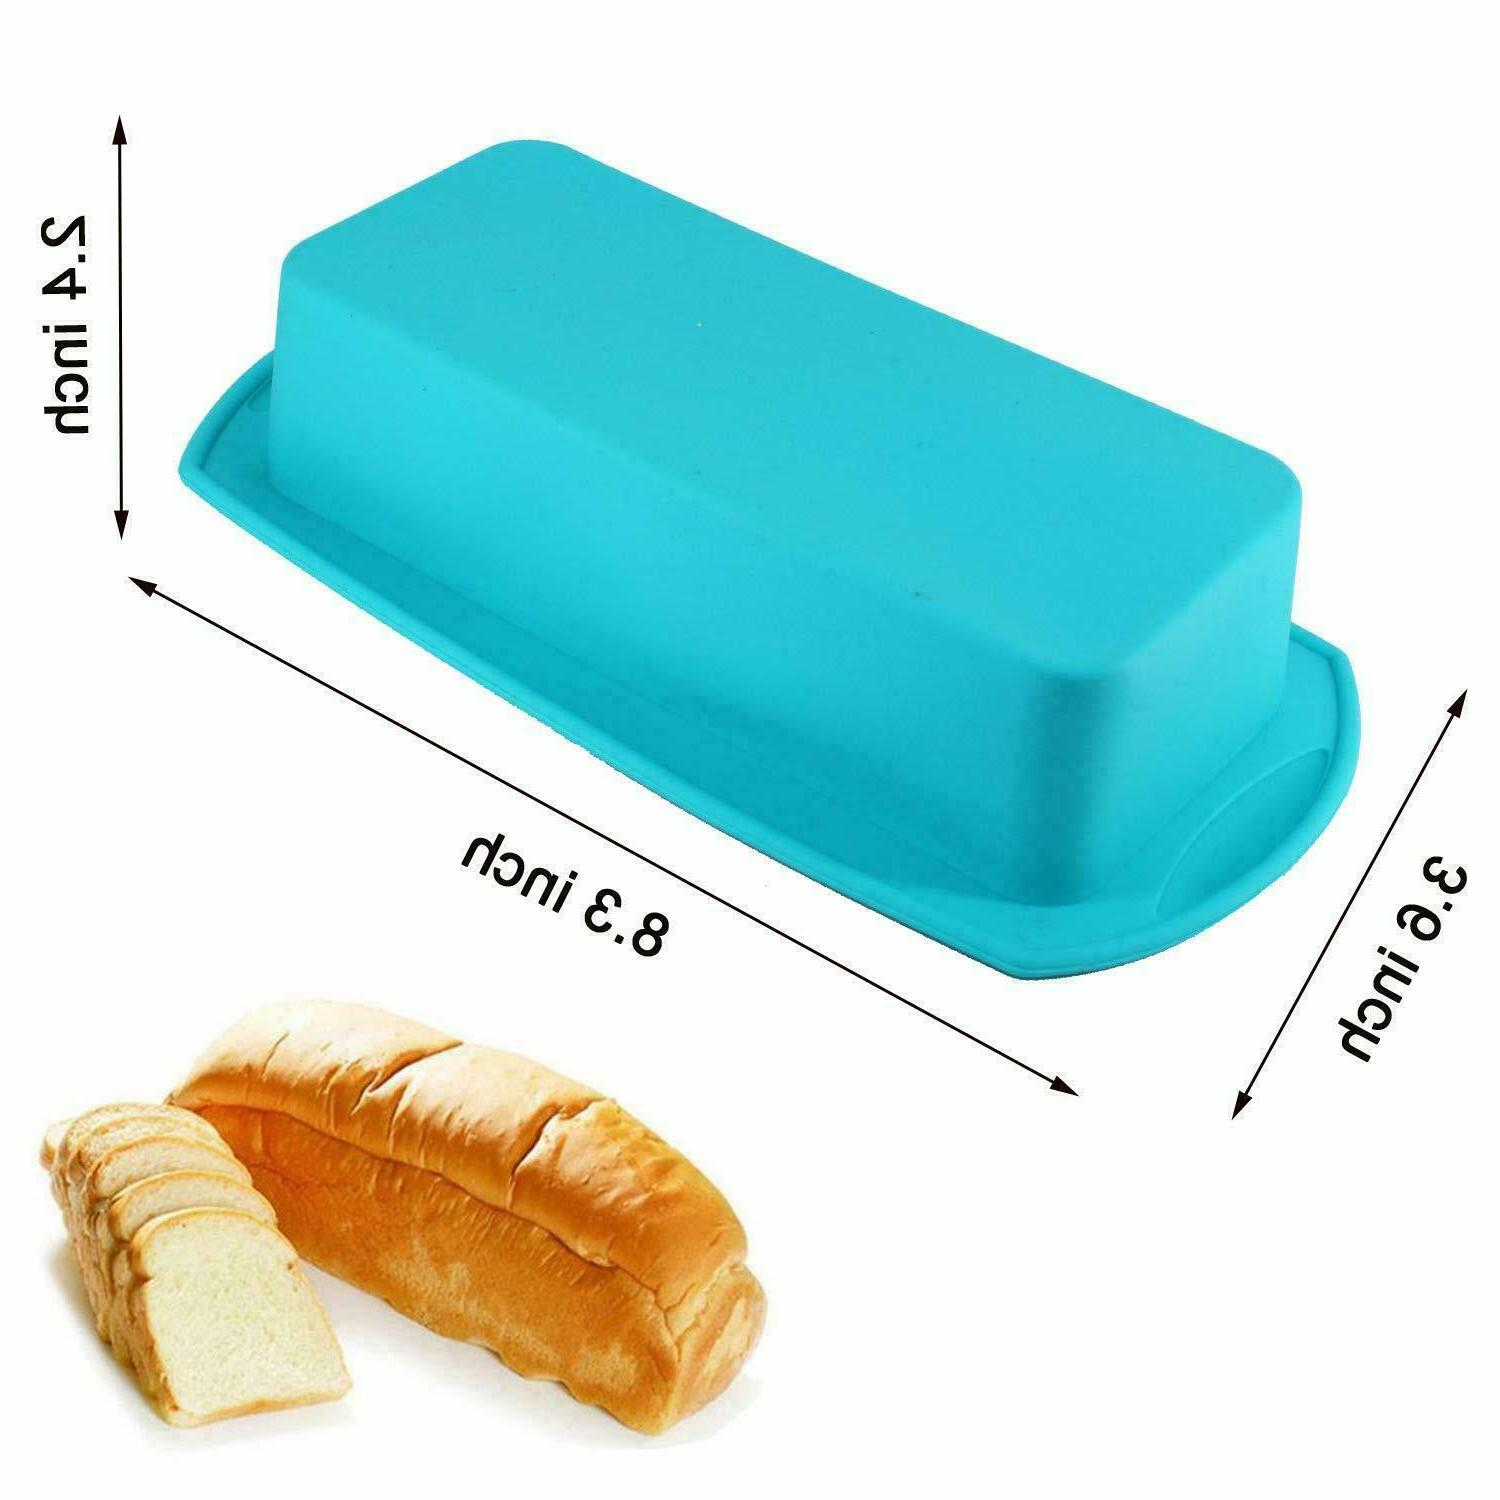 Silicone Molds 1/2 Baking Loaf Bread Pan Microwave Non